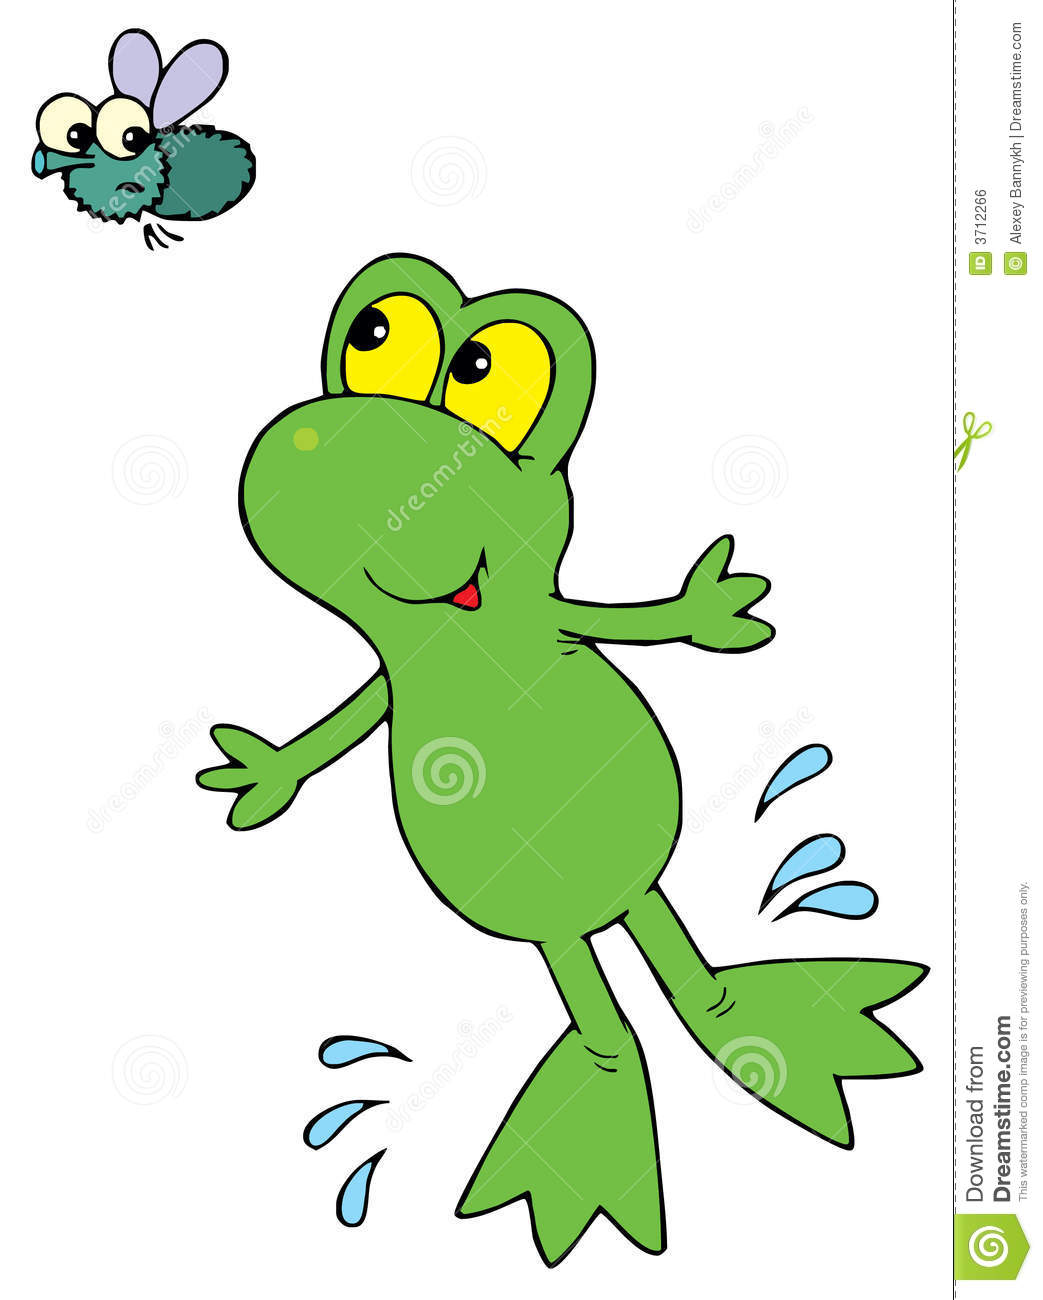 green frog clipart - photo #22